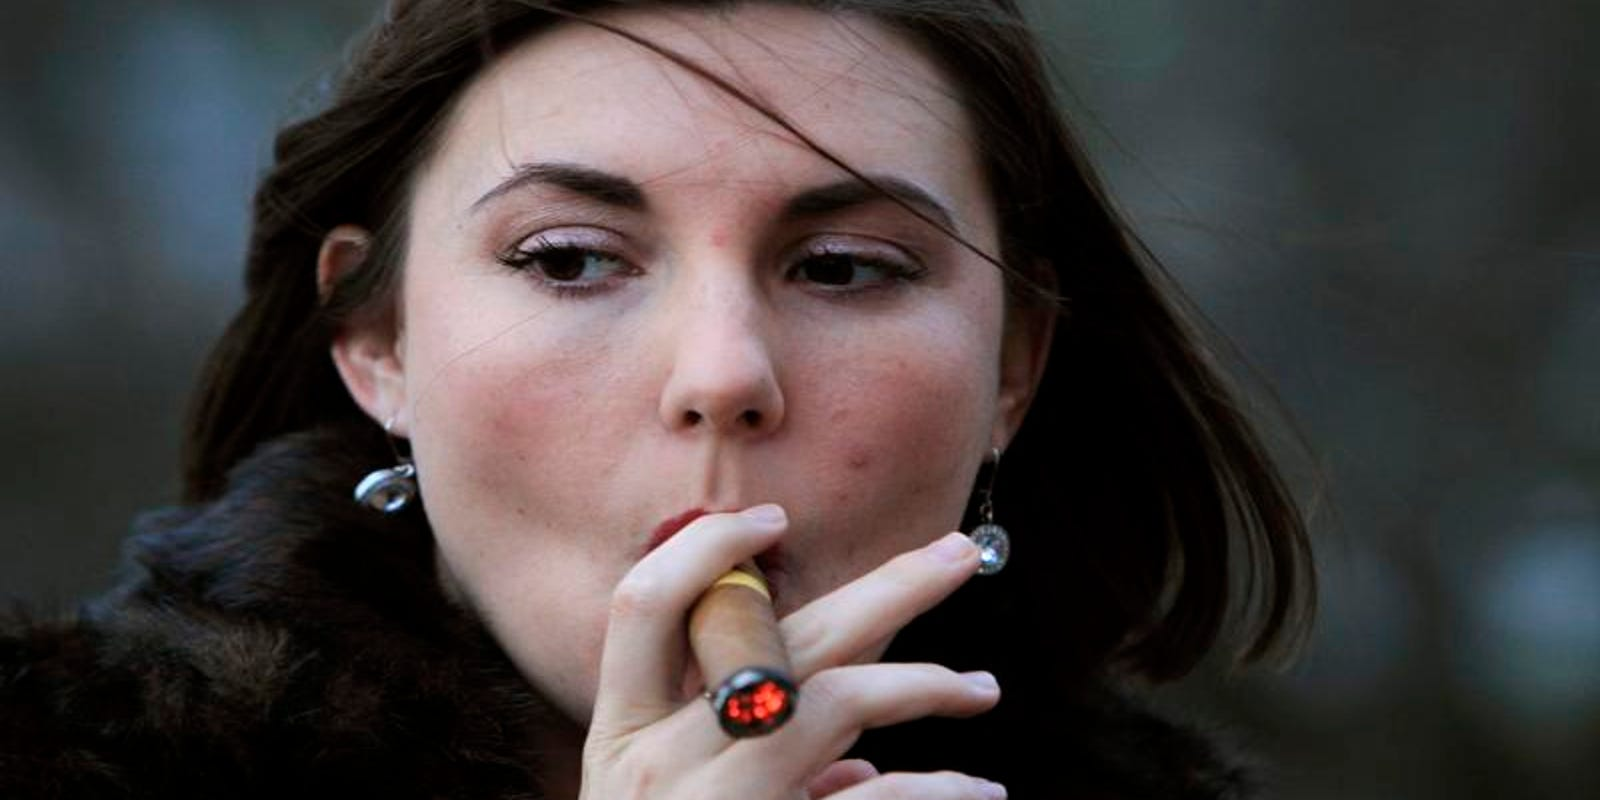 More women are smoking cigars, but